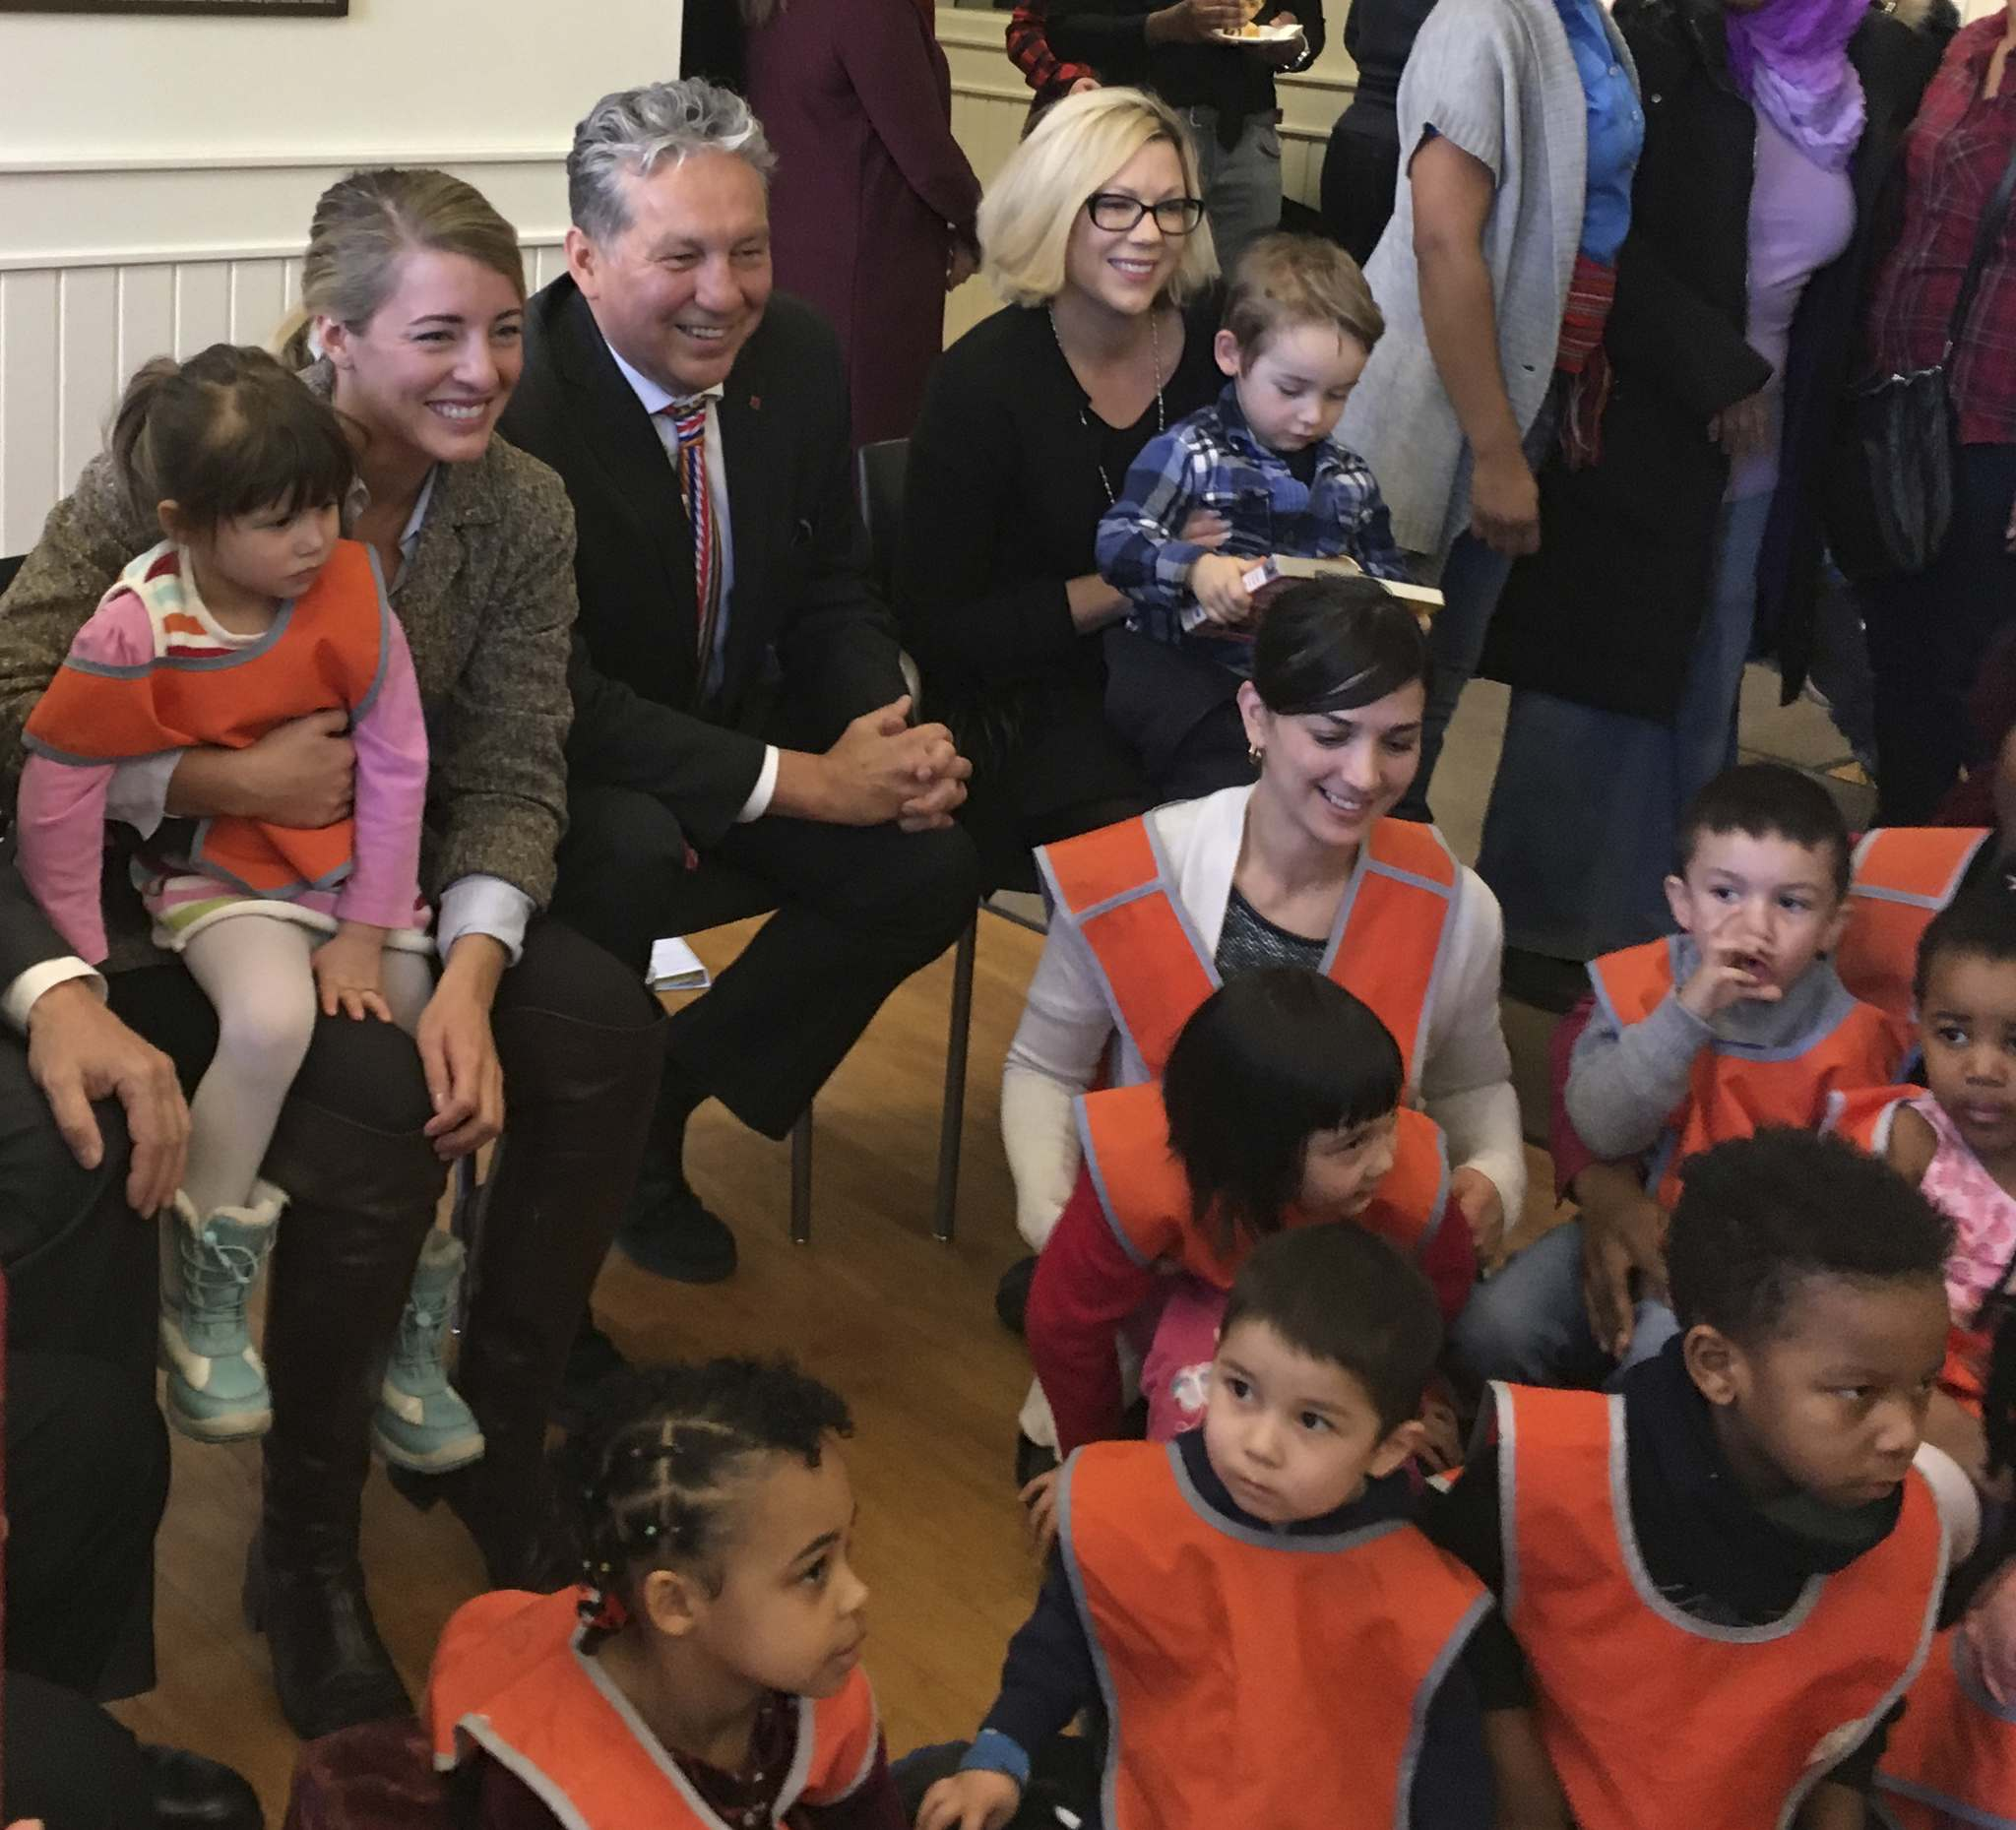 CAROL SANDERS / WINNIPEG FREE PRESS</p><p>From left, Minister of Tourism, Official Languages and La Francophonie M&#233;lanie Joly, MP Dan Vandal (St. Boniface-St. Vital) and Manitoba Minister for Francophone Affairs Rochelle Squires with children and daycare workers during an annoucement of a new daycare at the Universit&#233; de Saint-Boniface.</p>